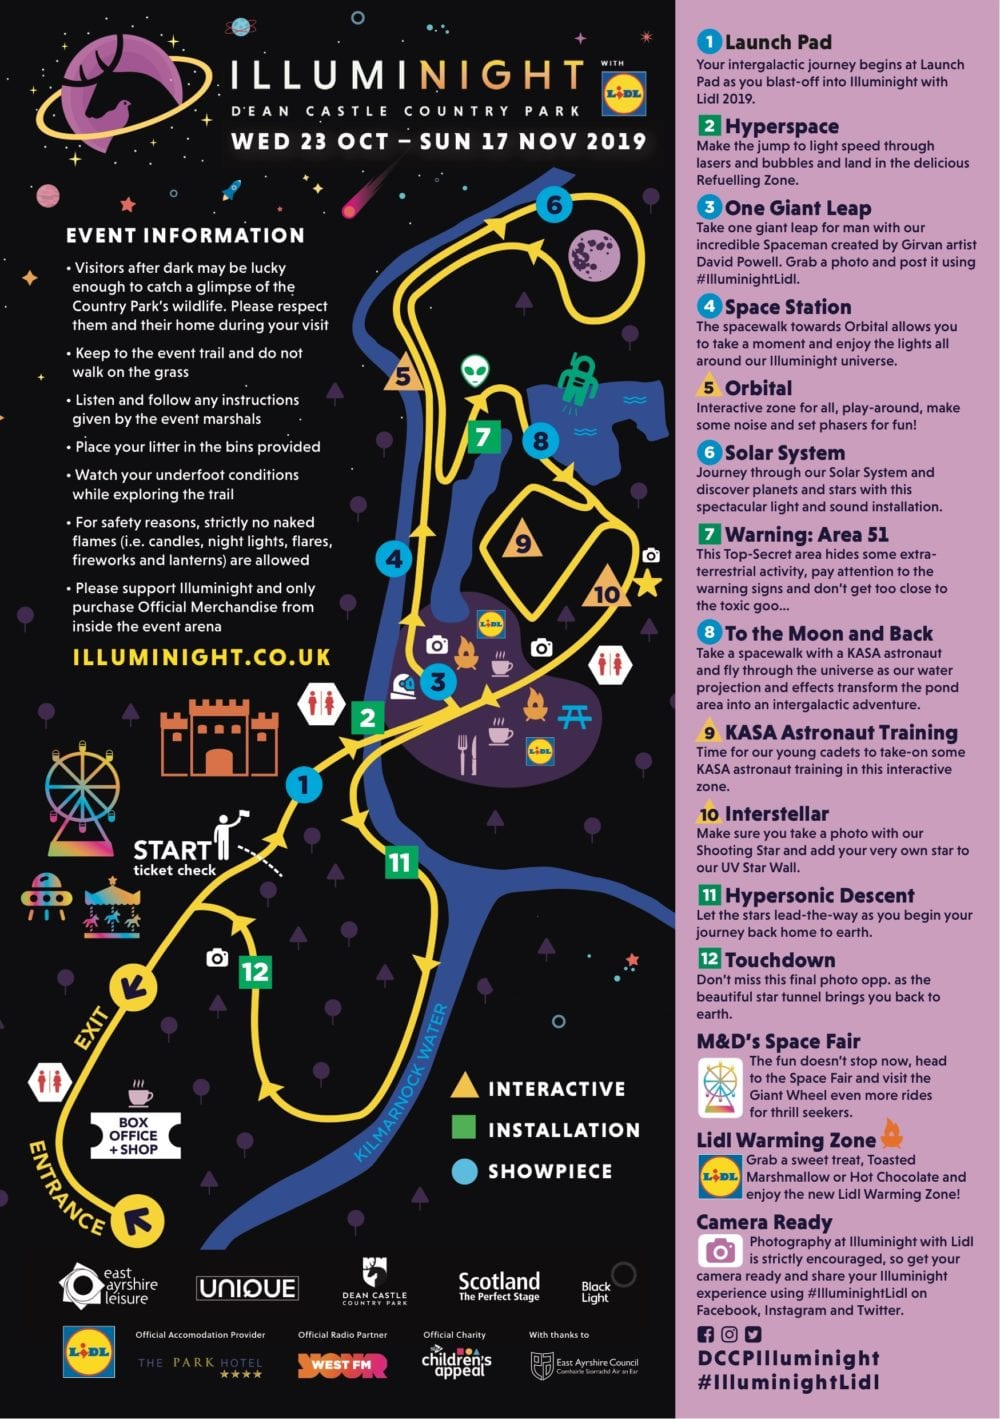 2019 illuminight with lidl dean castle kilmarnock map